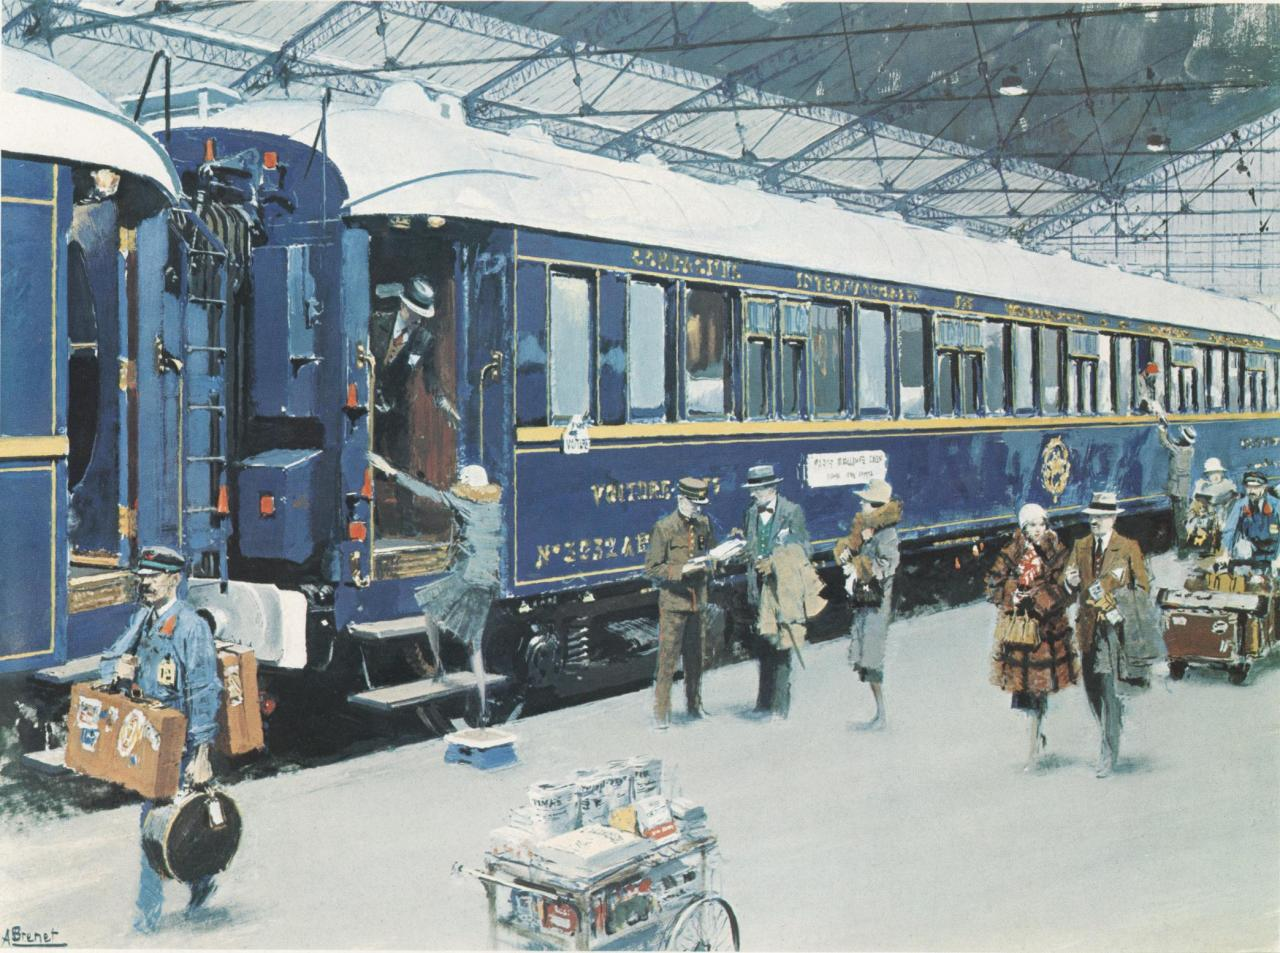 The Blue Train or Le Train Bleu Agatha Christie Poirot